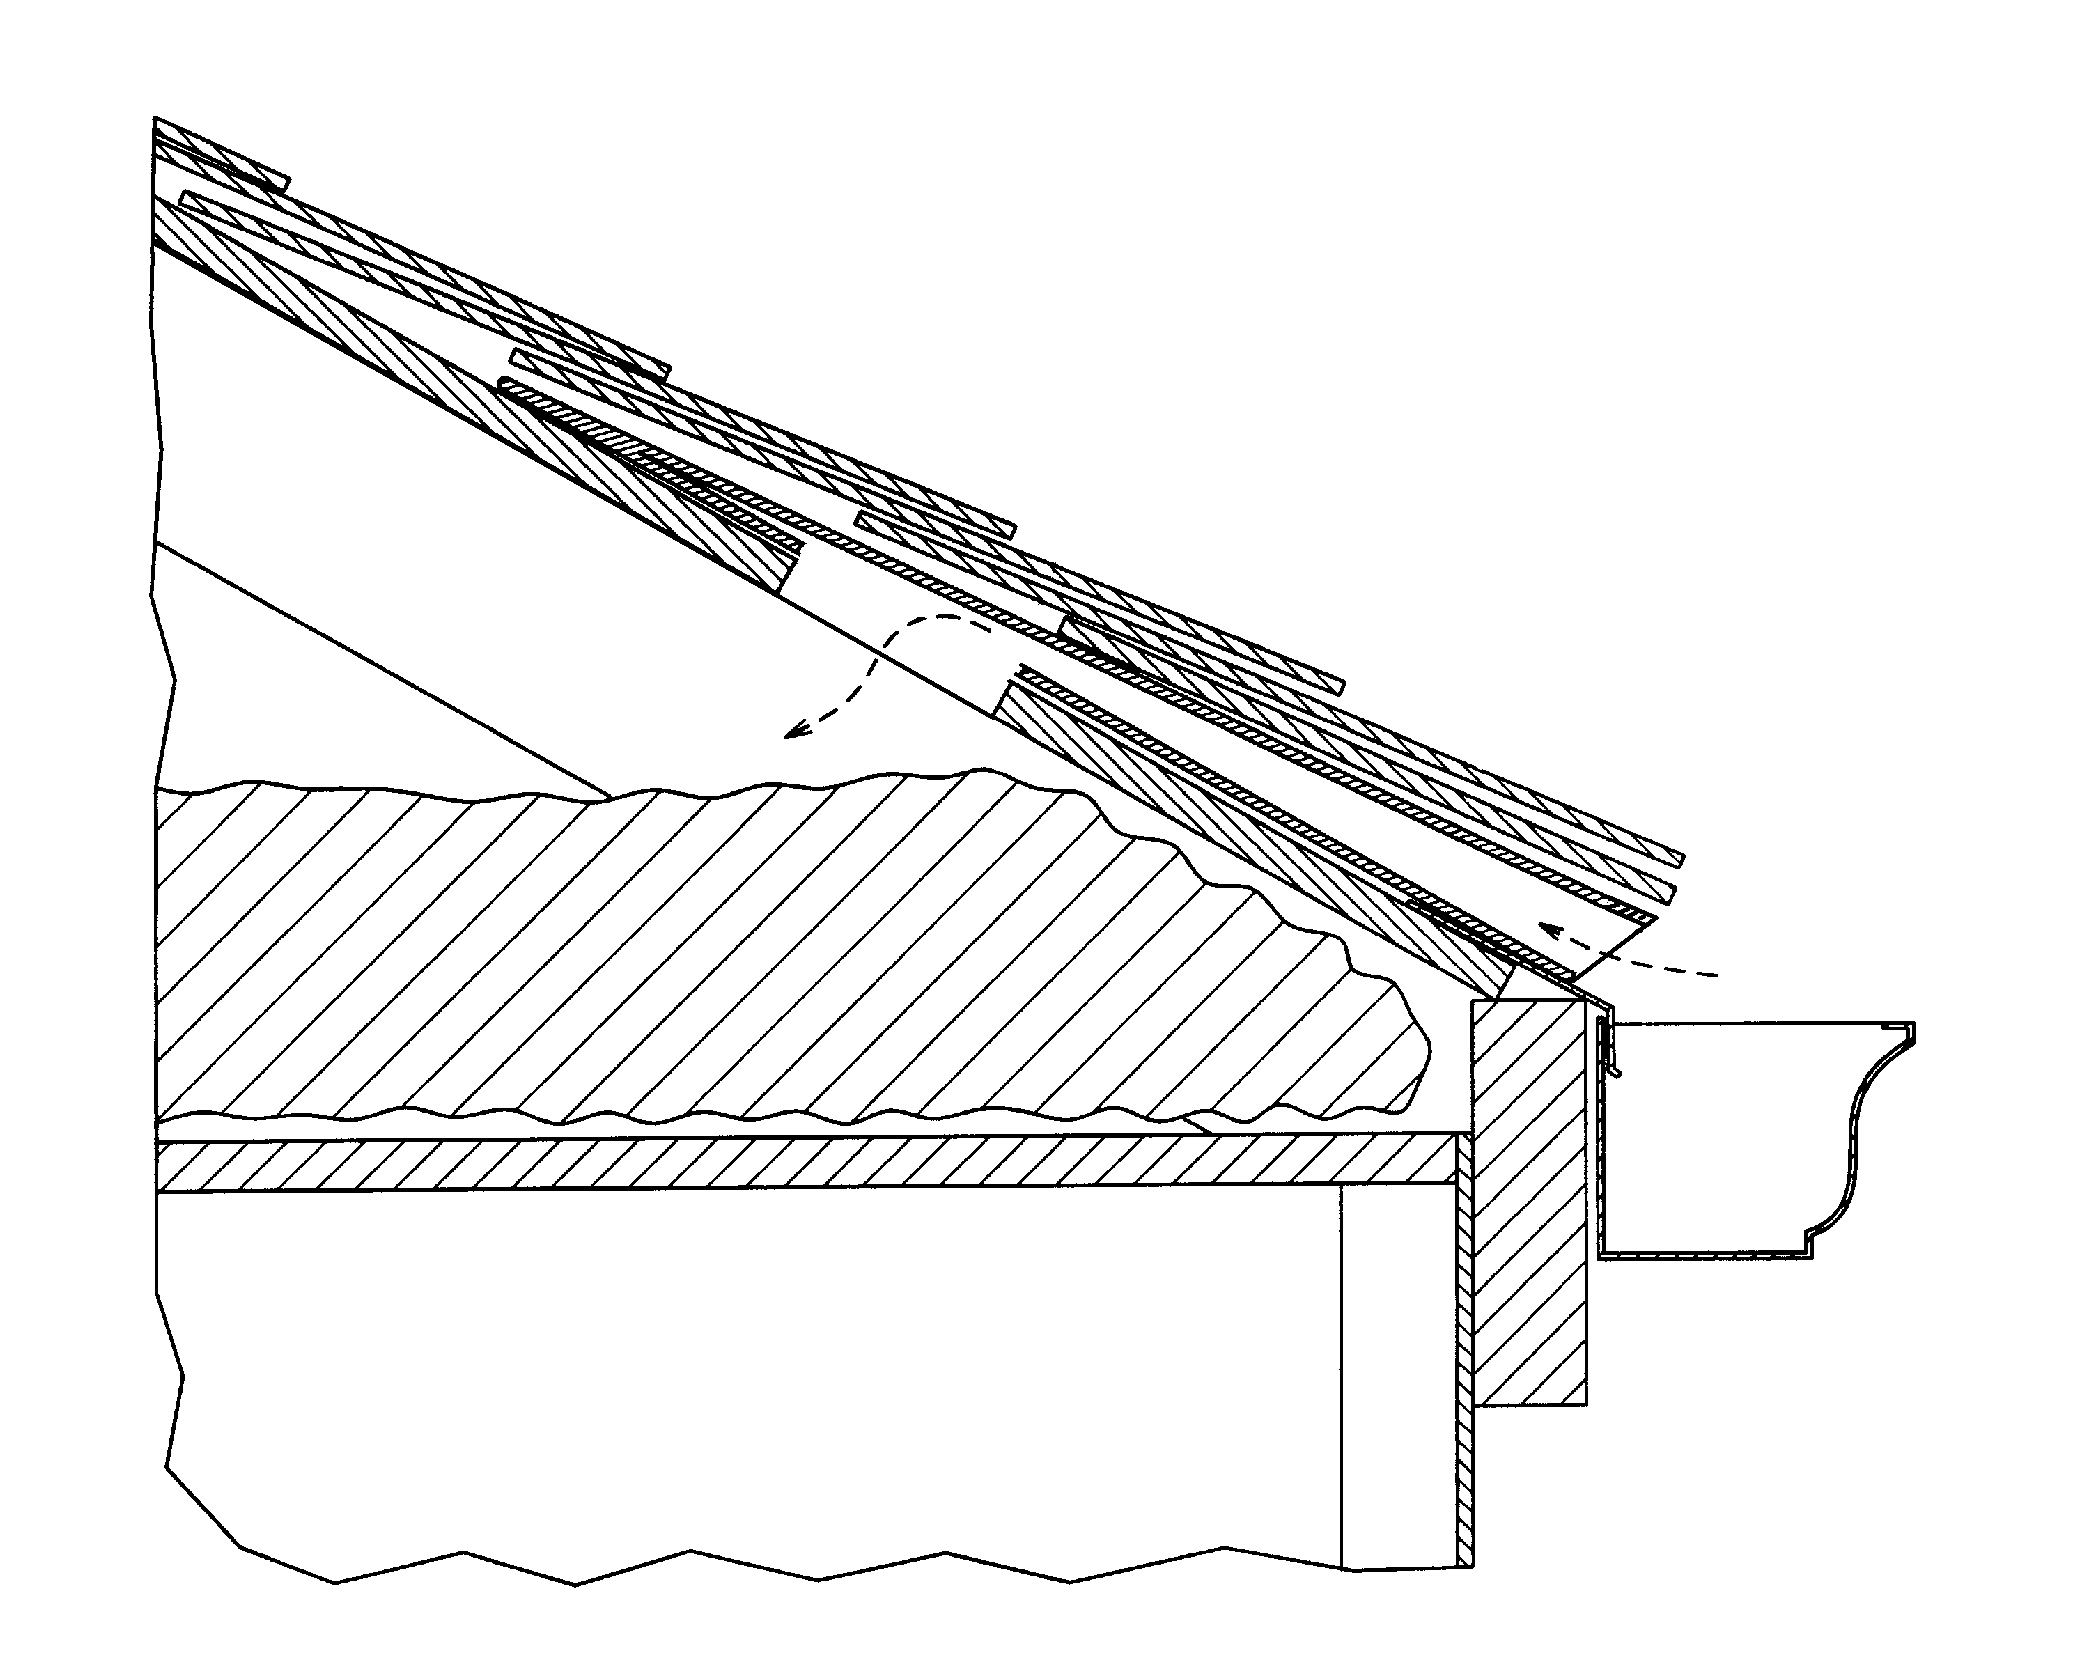 The Edge Vent Attic Ventilation Ventilation Attic